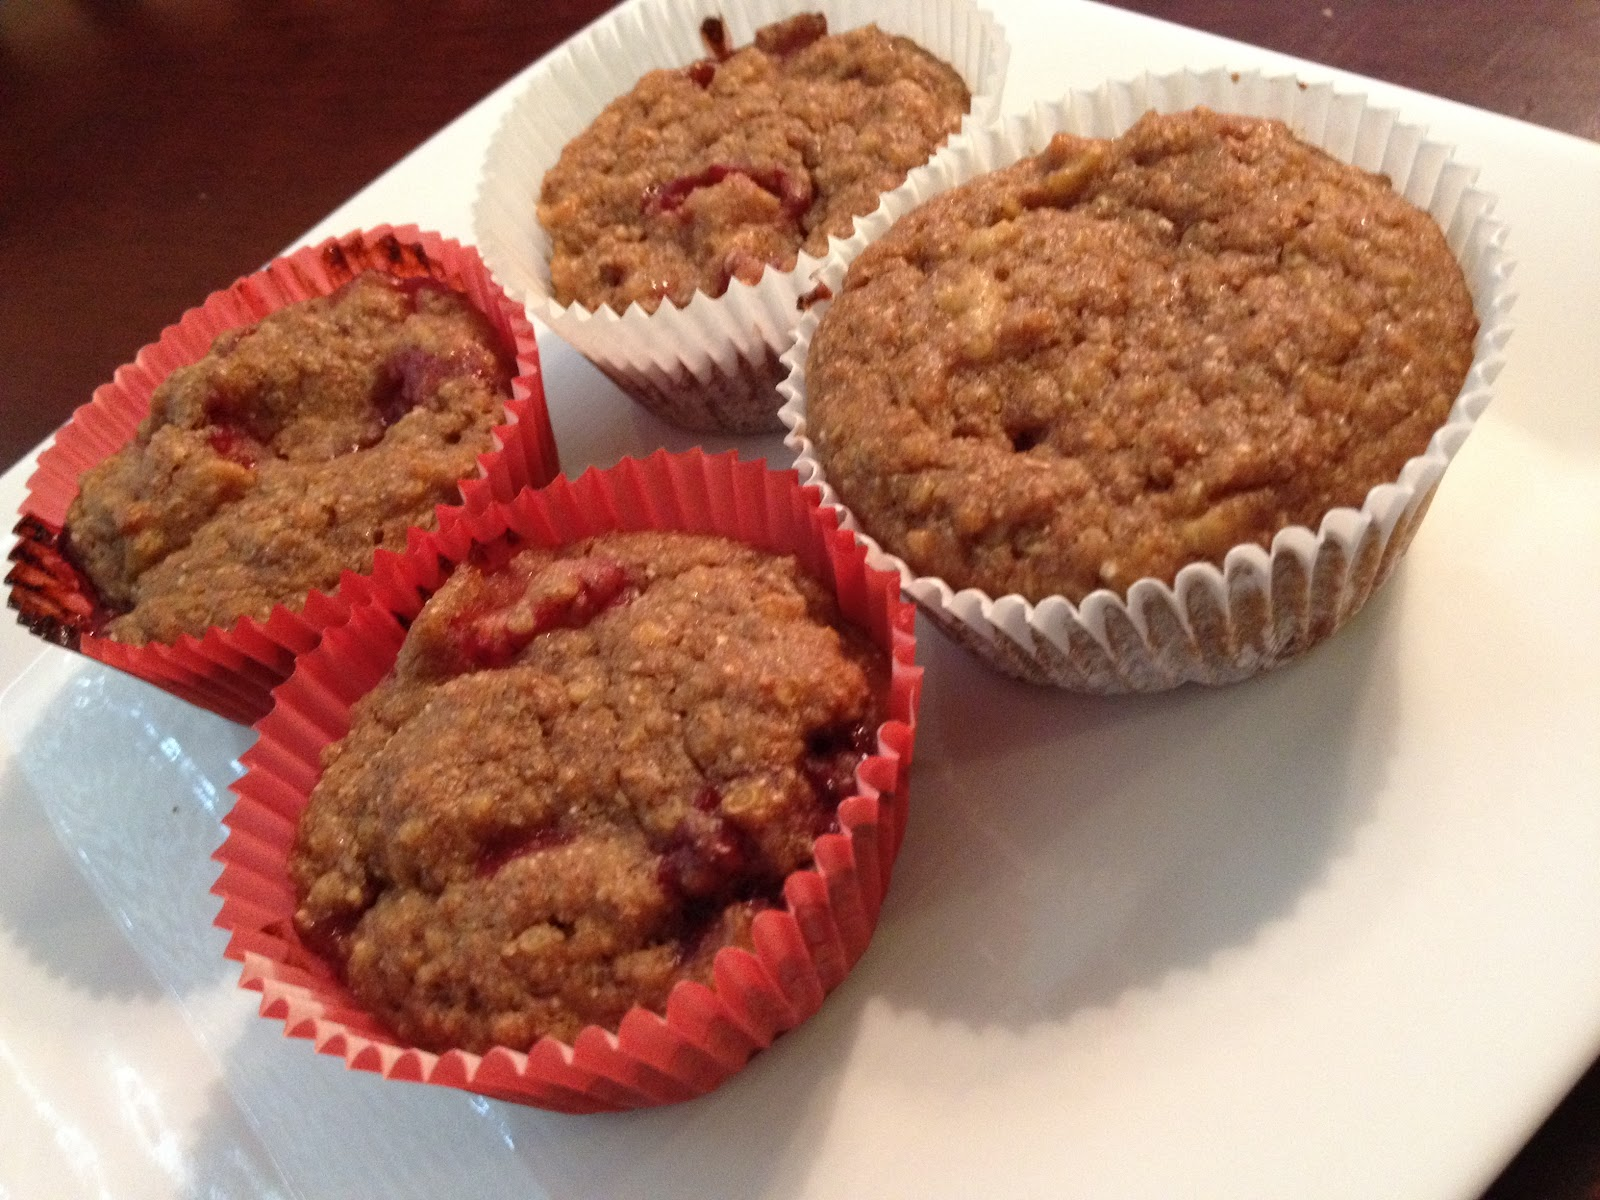 Eggless Sunday: Strawberry Banana Quinoa Muffins